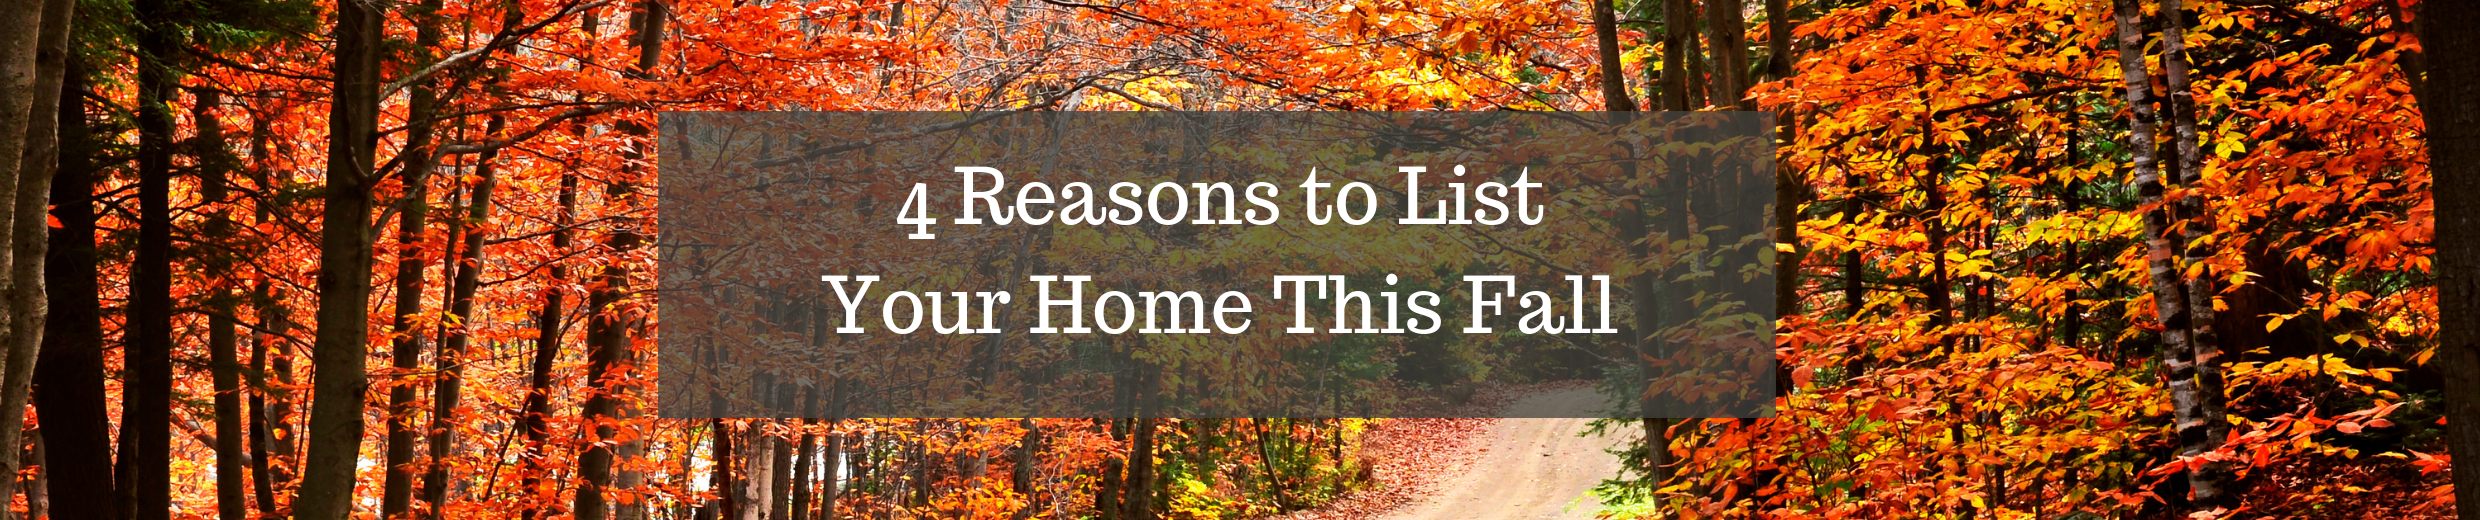 4 Reasons to List Your Home This Fall (1).png